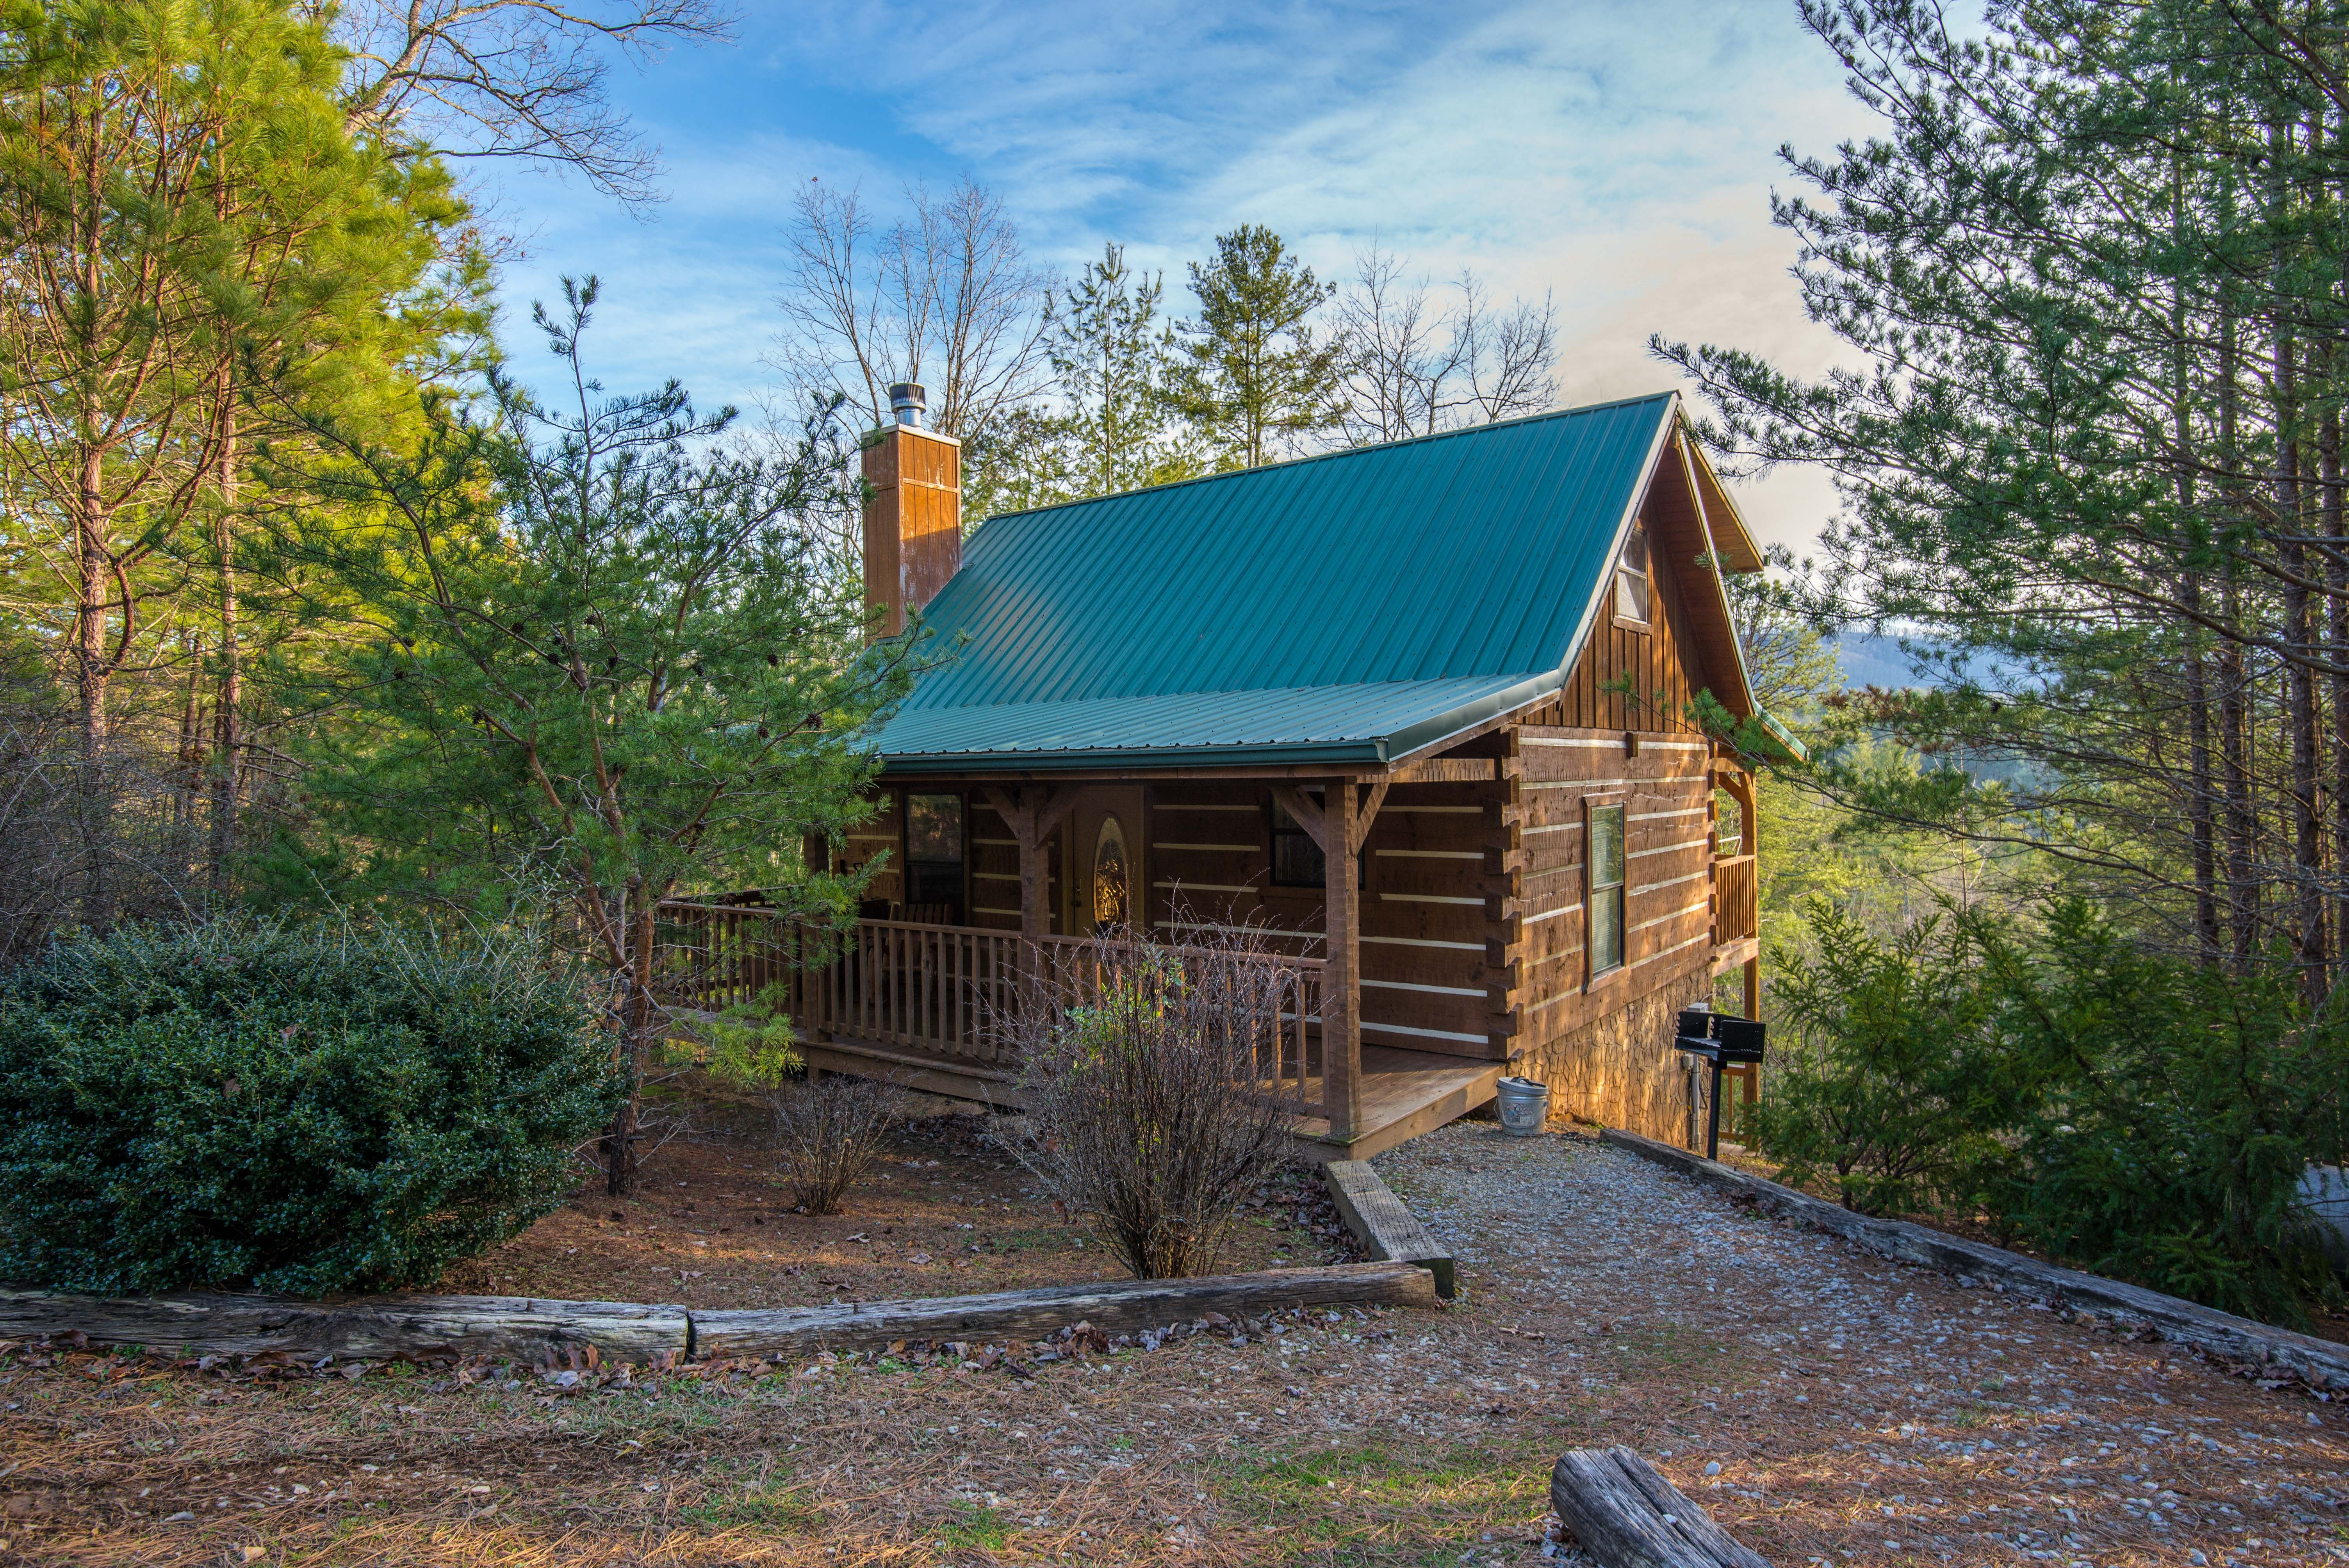 Loving This Cozy Little Cabin Tucked Among The Trees Featured Cabin Little Smoky Dream Greatsmokymoun Pigeon Forge Vacation Gatlinburg Cabins Little Cabin